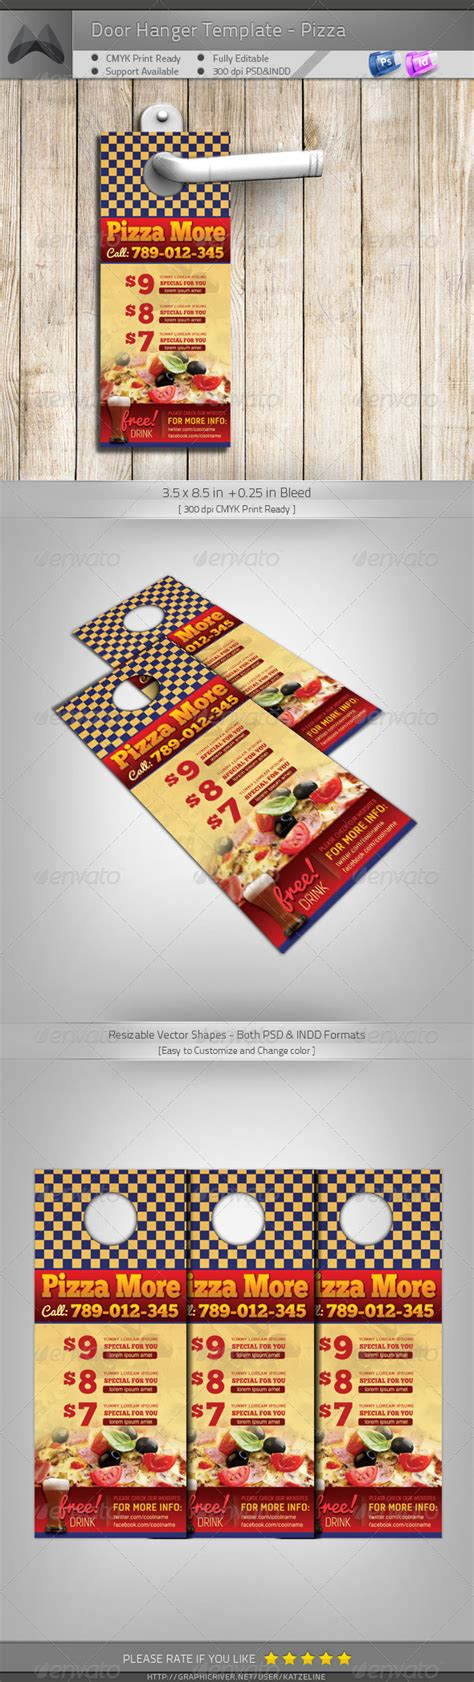 restaurant door hanger template door hanger pizza more graphicriver